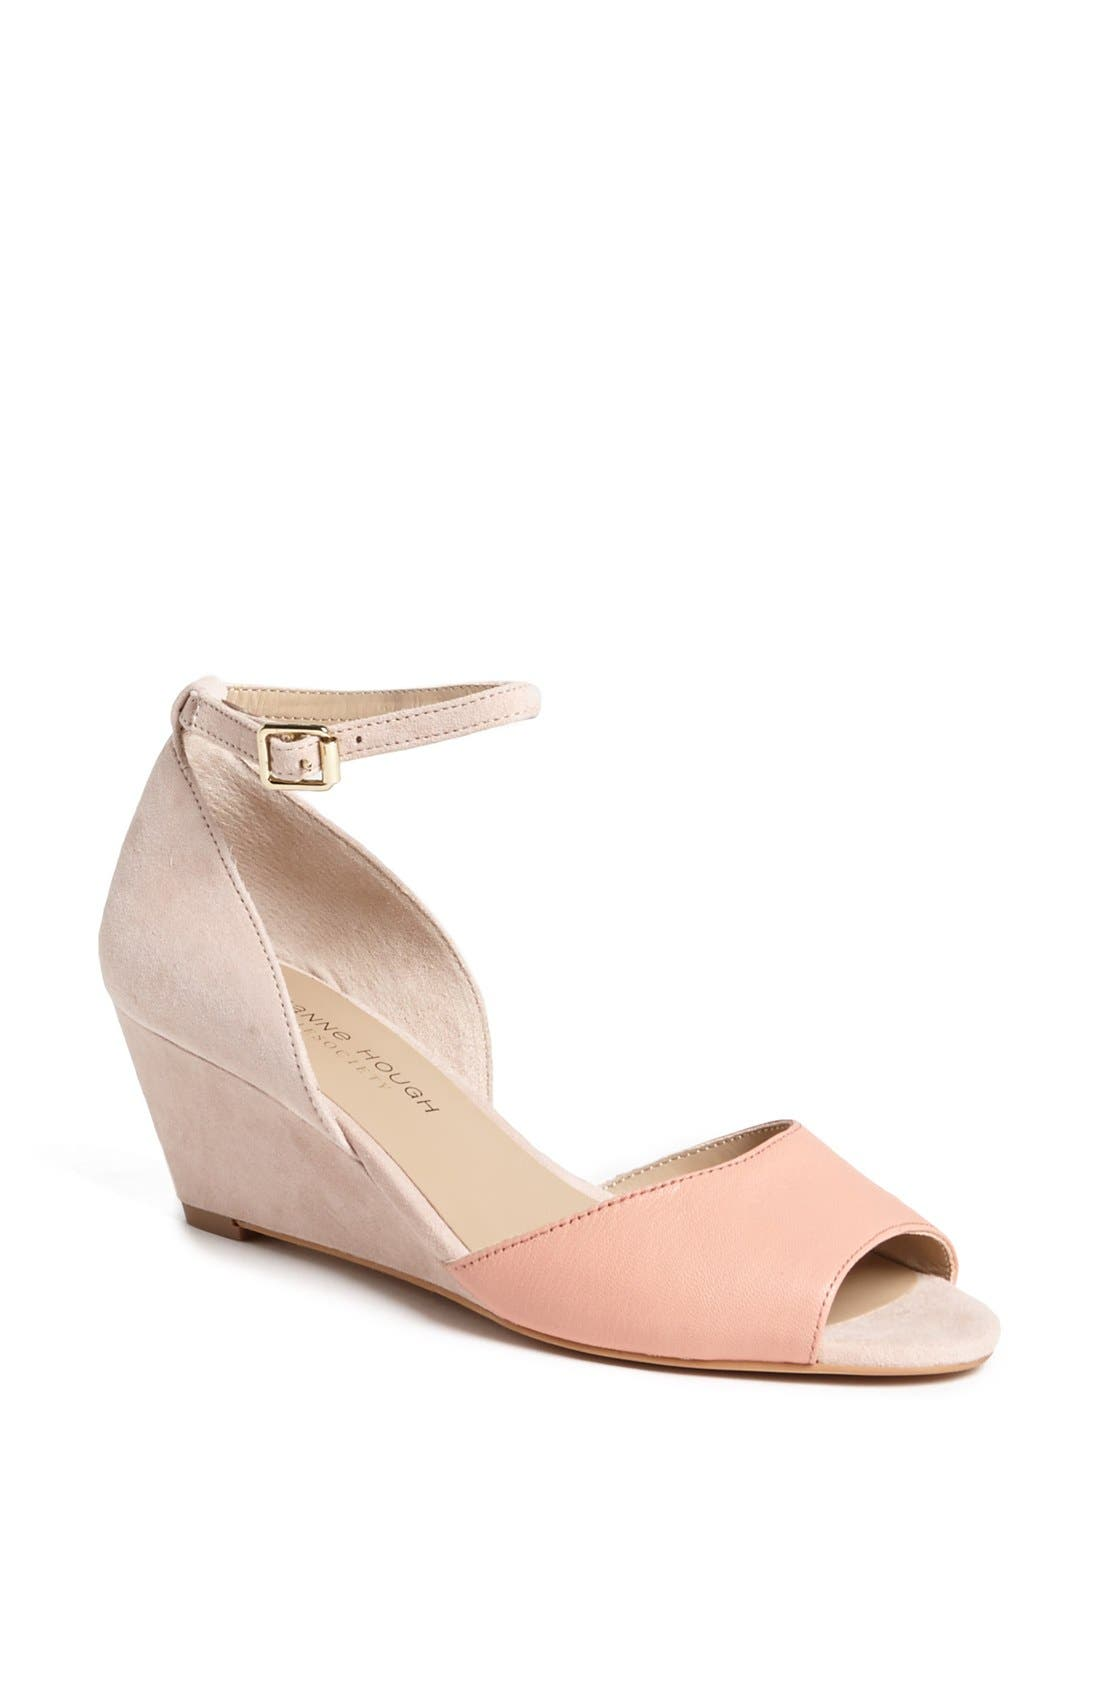 Alternate Image 1 Selected - Julianne Hough for Sole Society 'Lacey' Suede & Leather Wedge Sandal